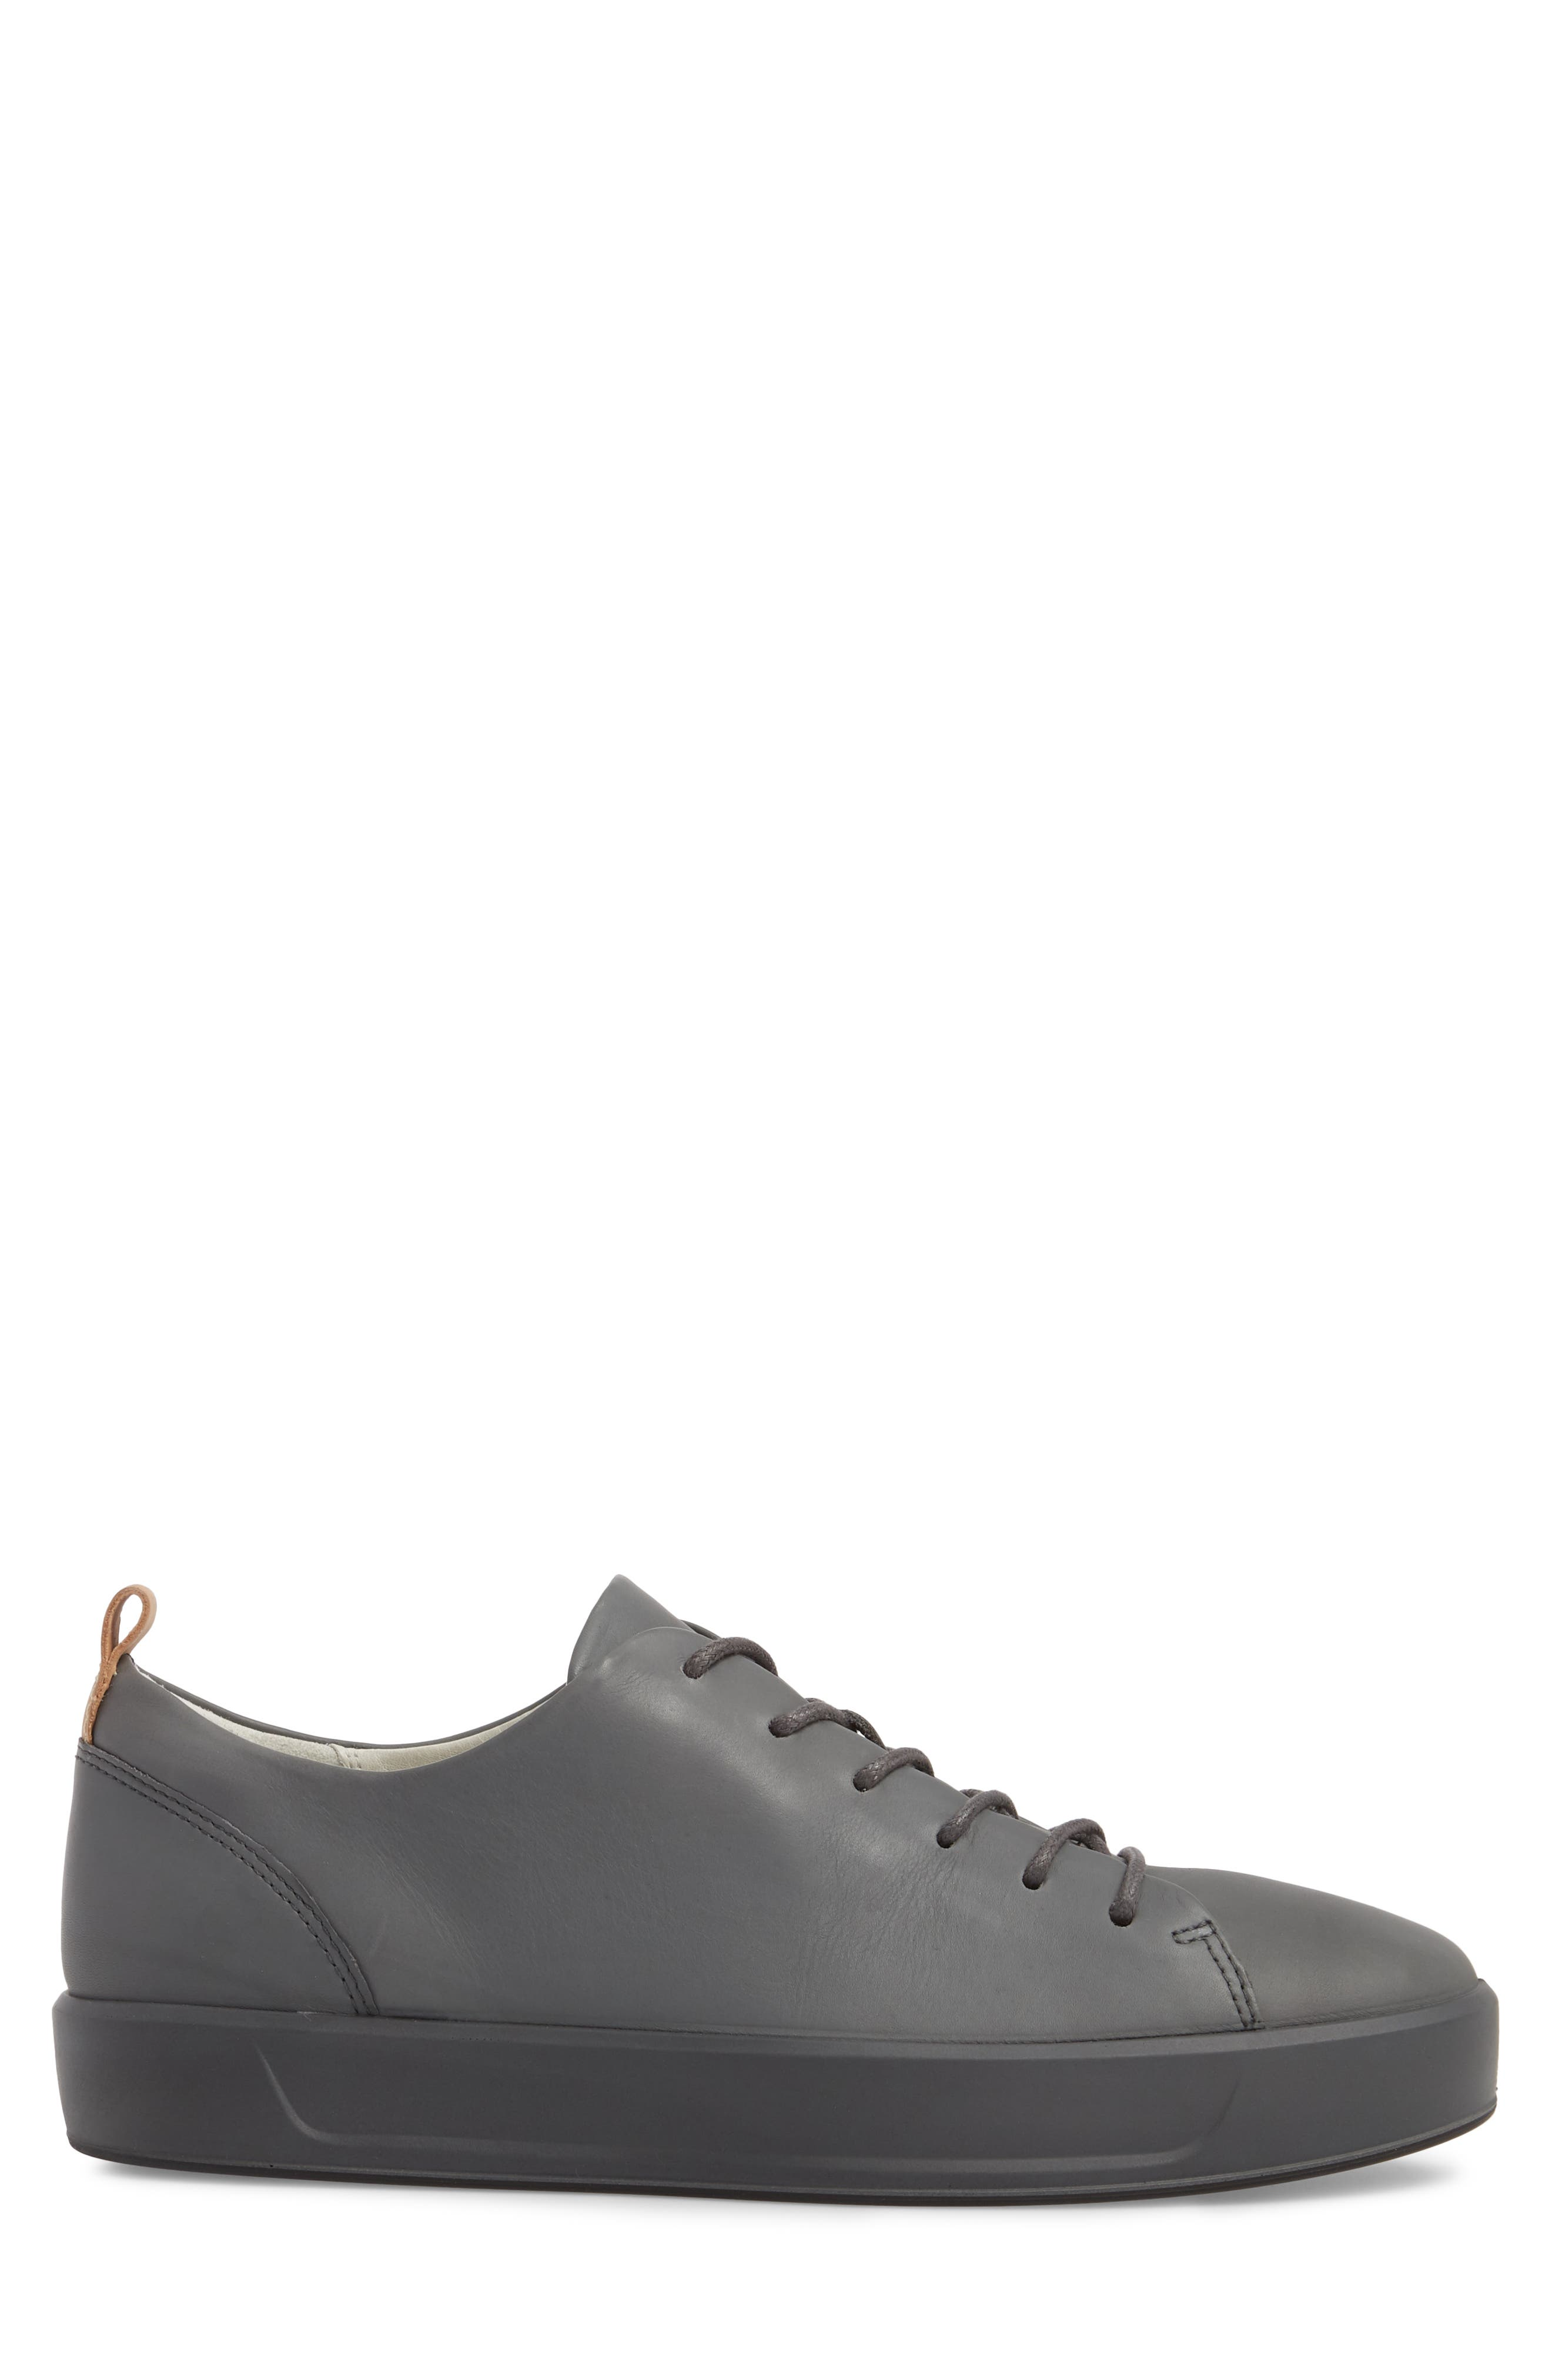 Soft 8 Low Top Sneaker,                             Alternate thumbnail 3, color,                             Urban Grey Leather